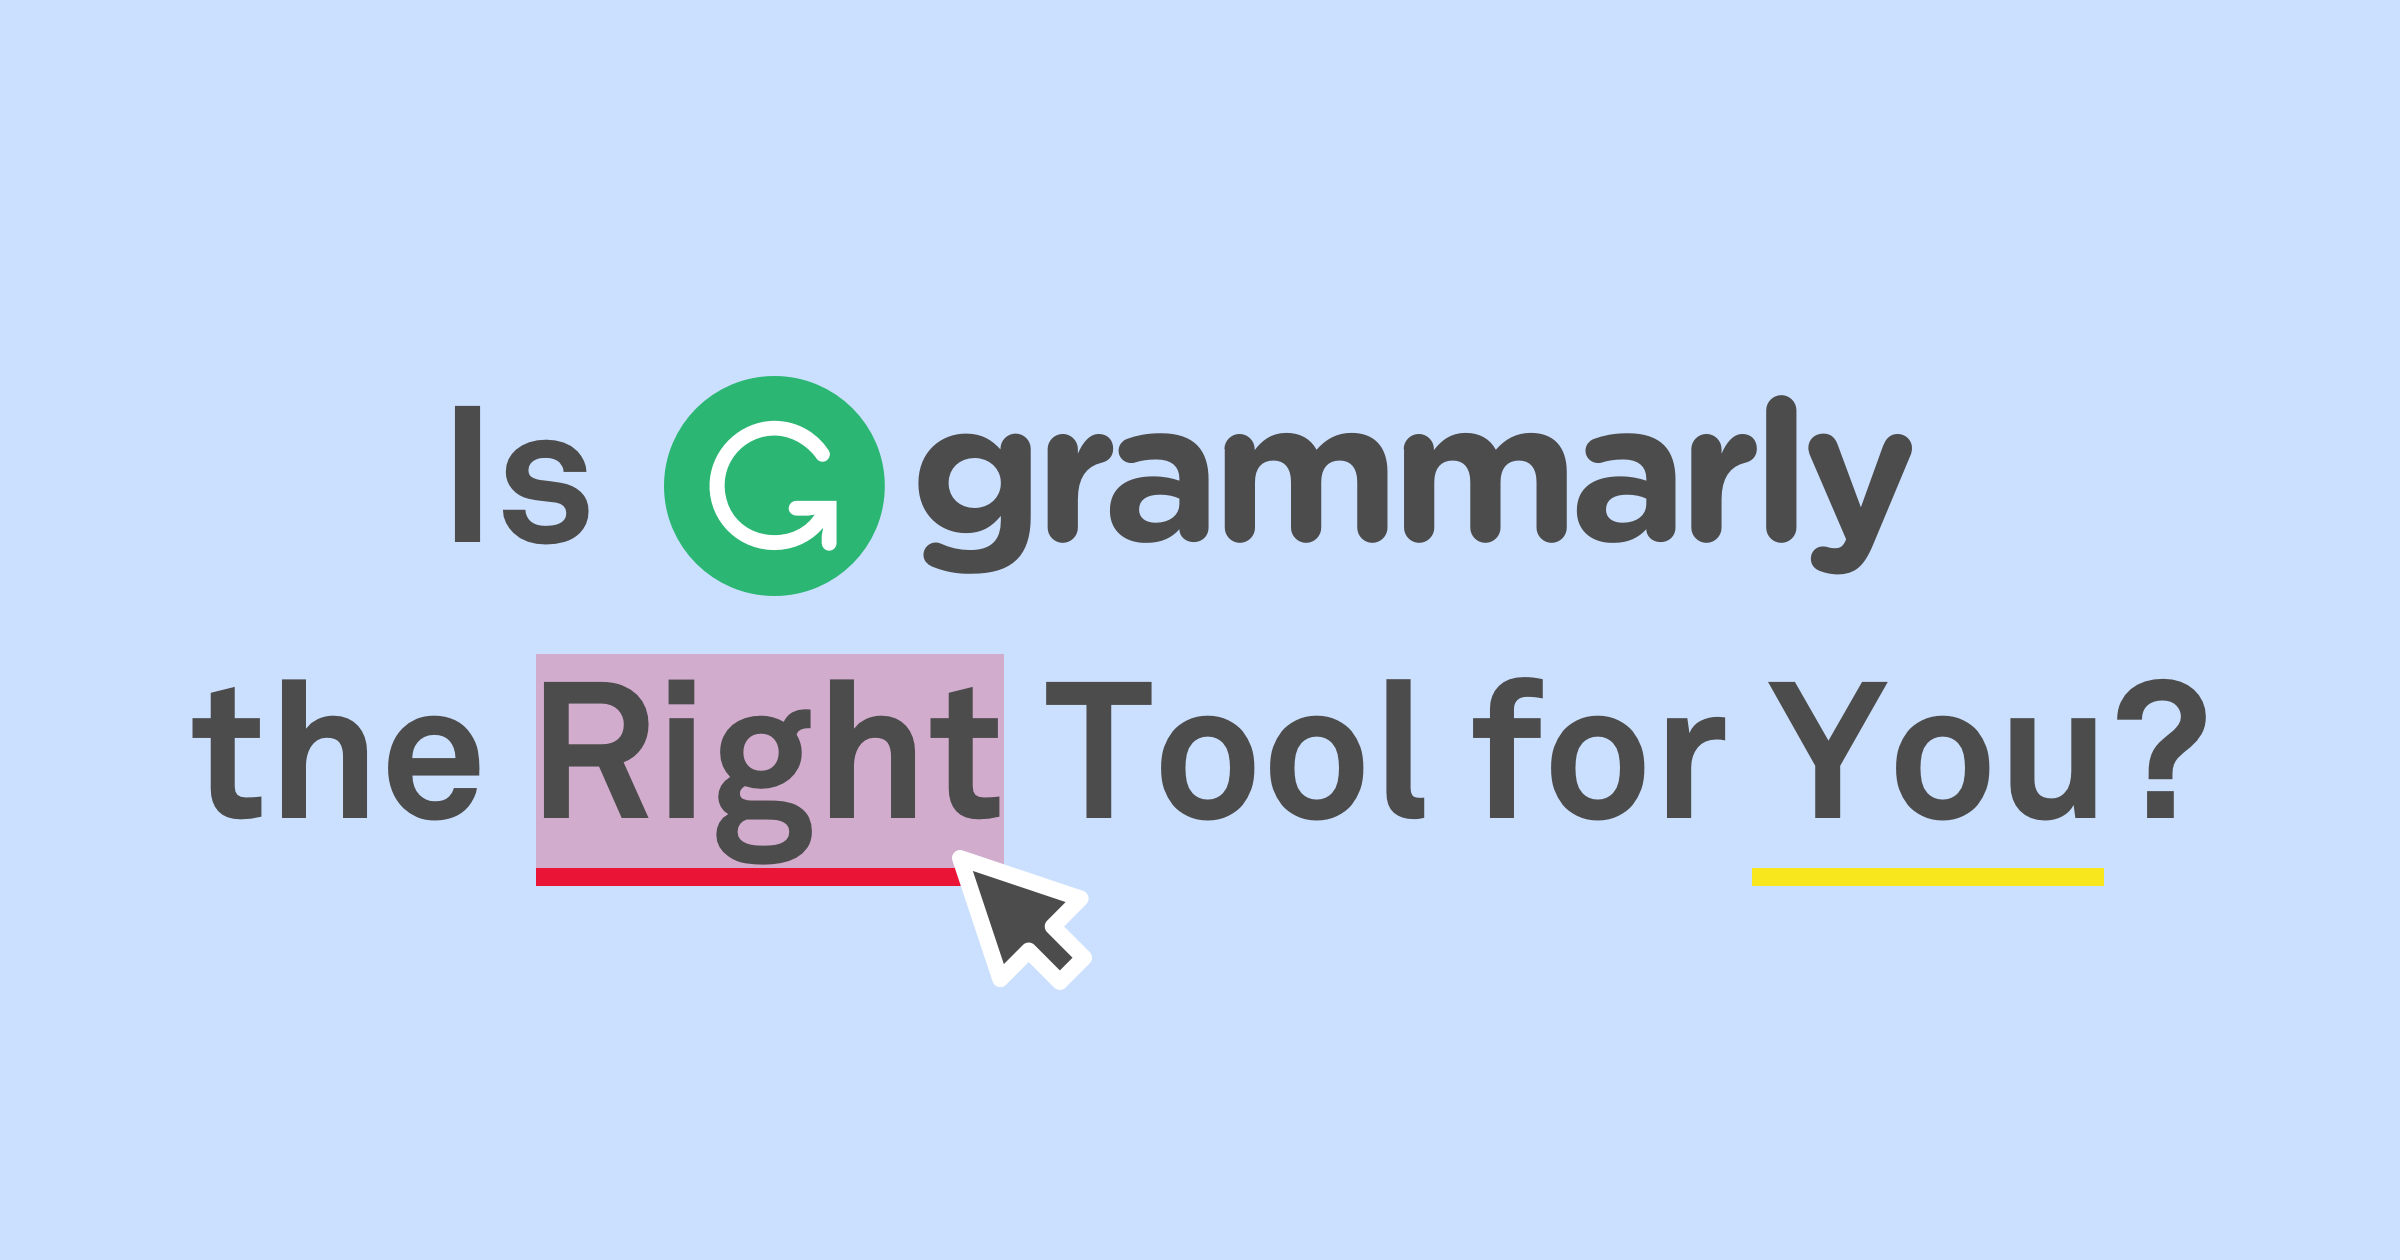 Grammarly Adverts Annoying